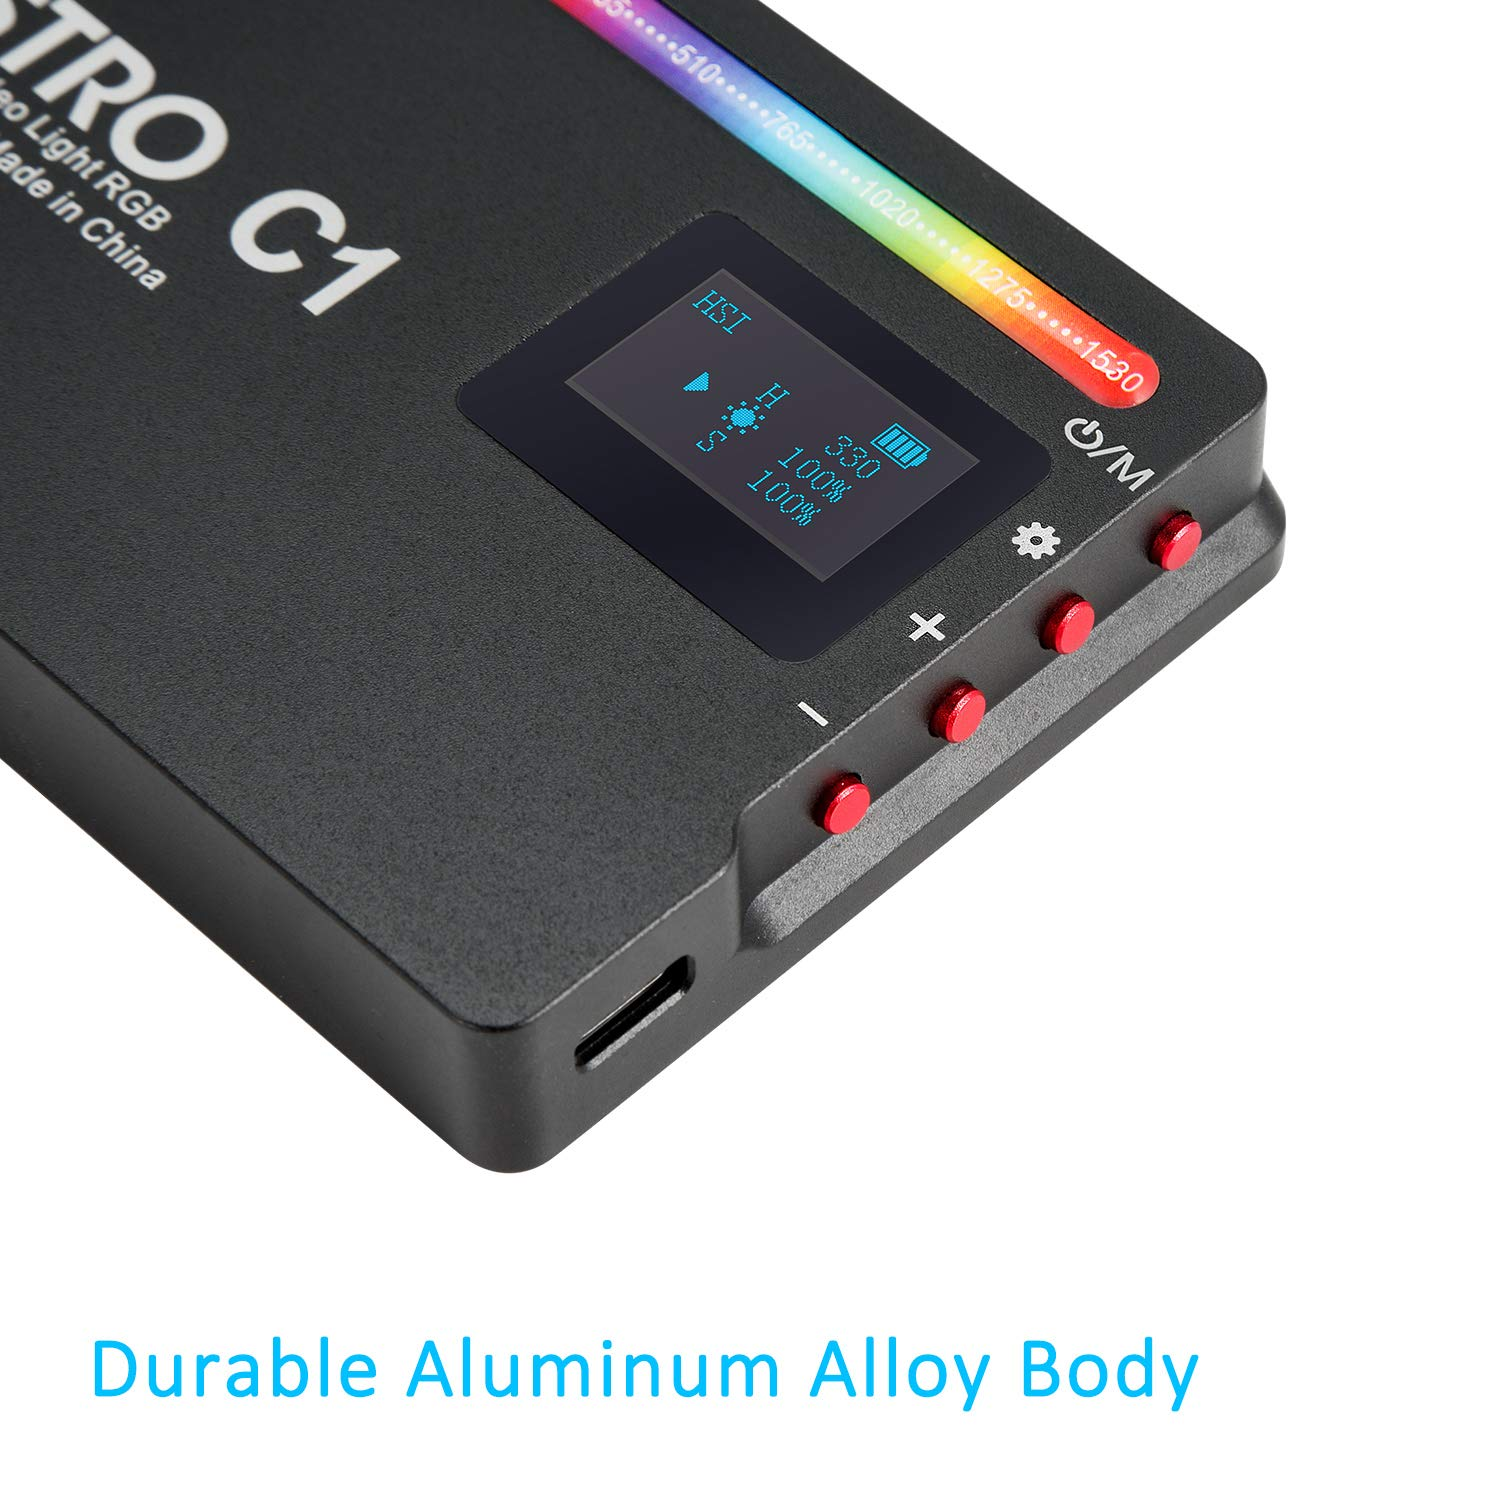 Full Color RGB Light for Camera Camcorder 10 Scene Simulations with Premium Aluminum Alloy Shell INSSTRO C1 RGB LED Video Light Rechargeable Pocket Size Video Light with 2500k-8500k Color Range